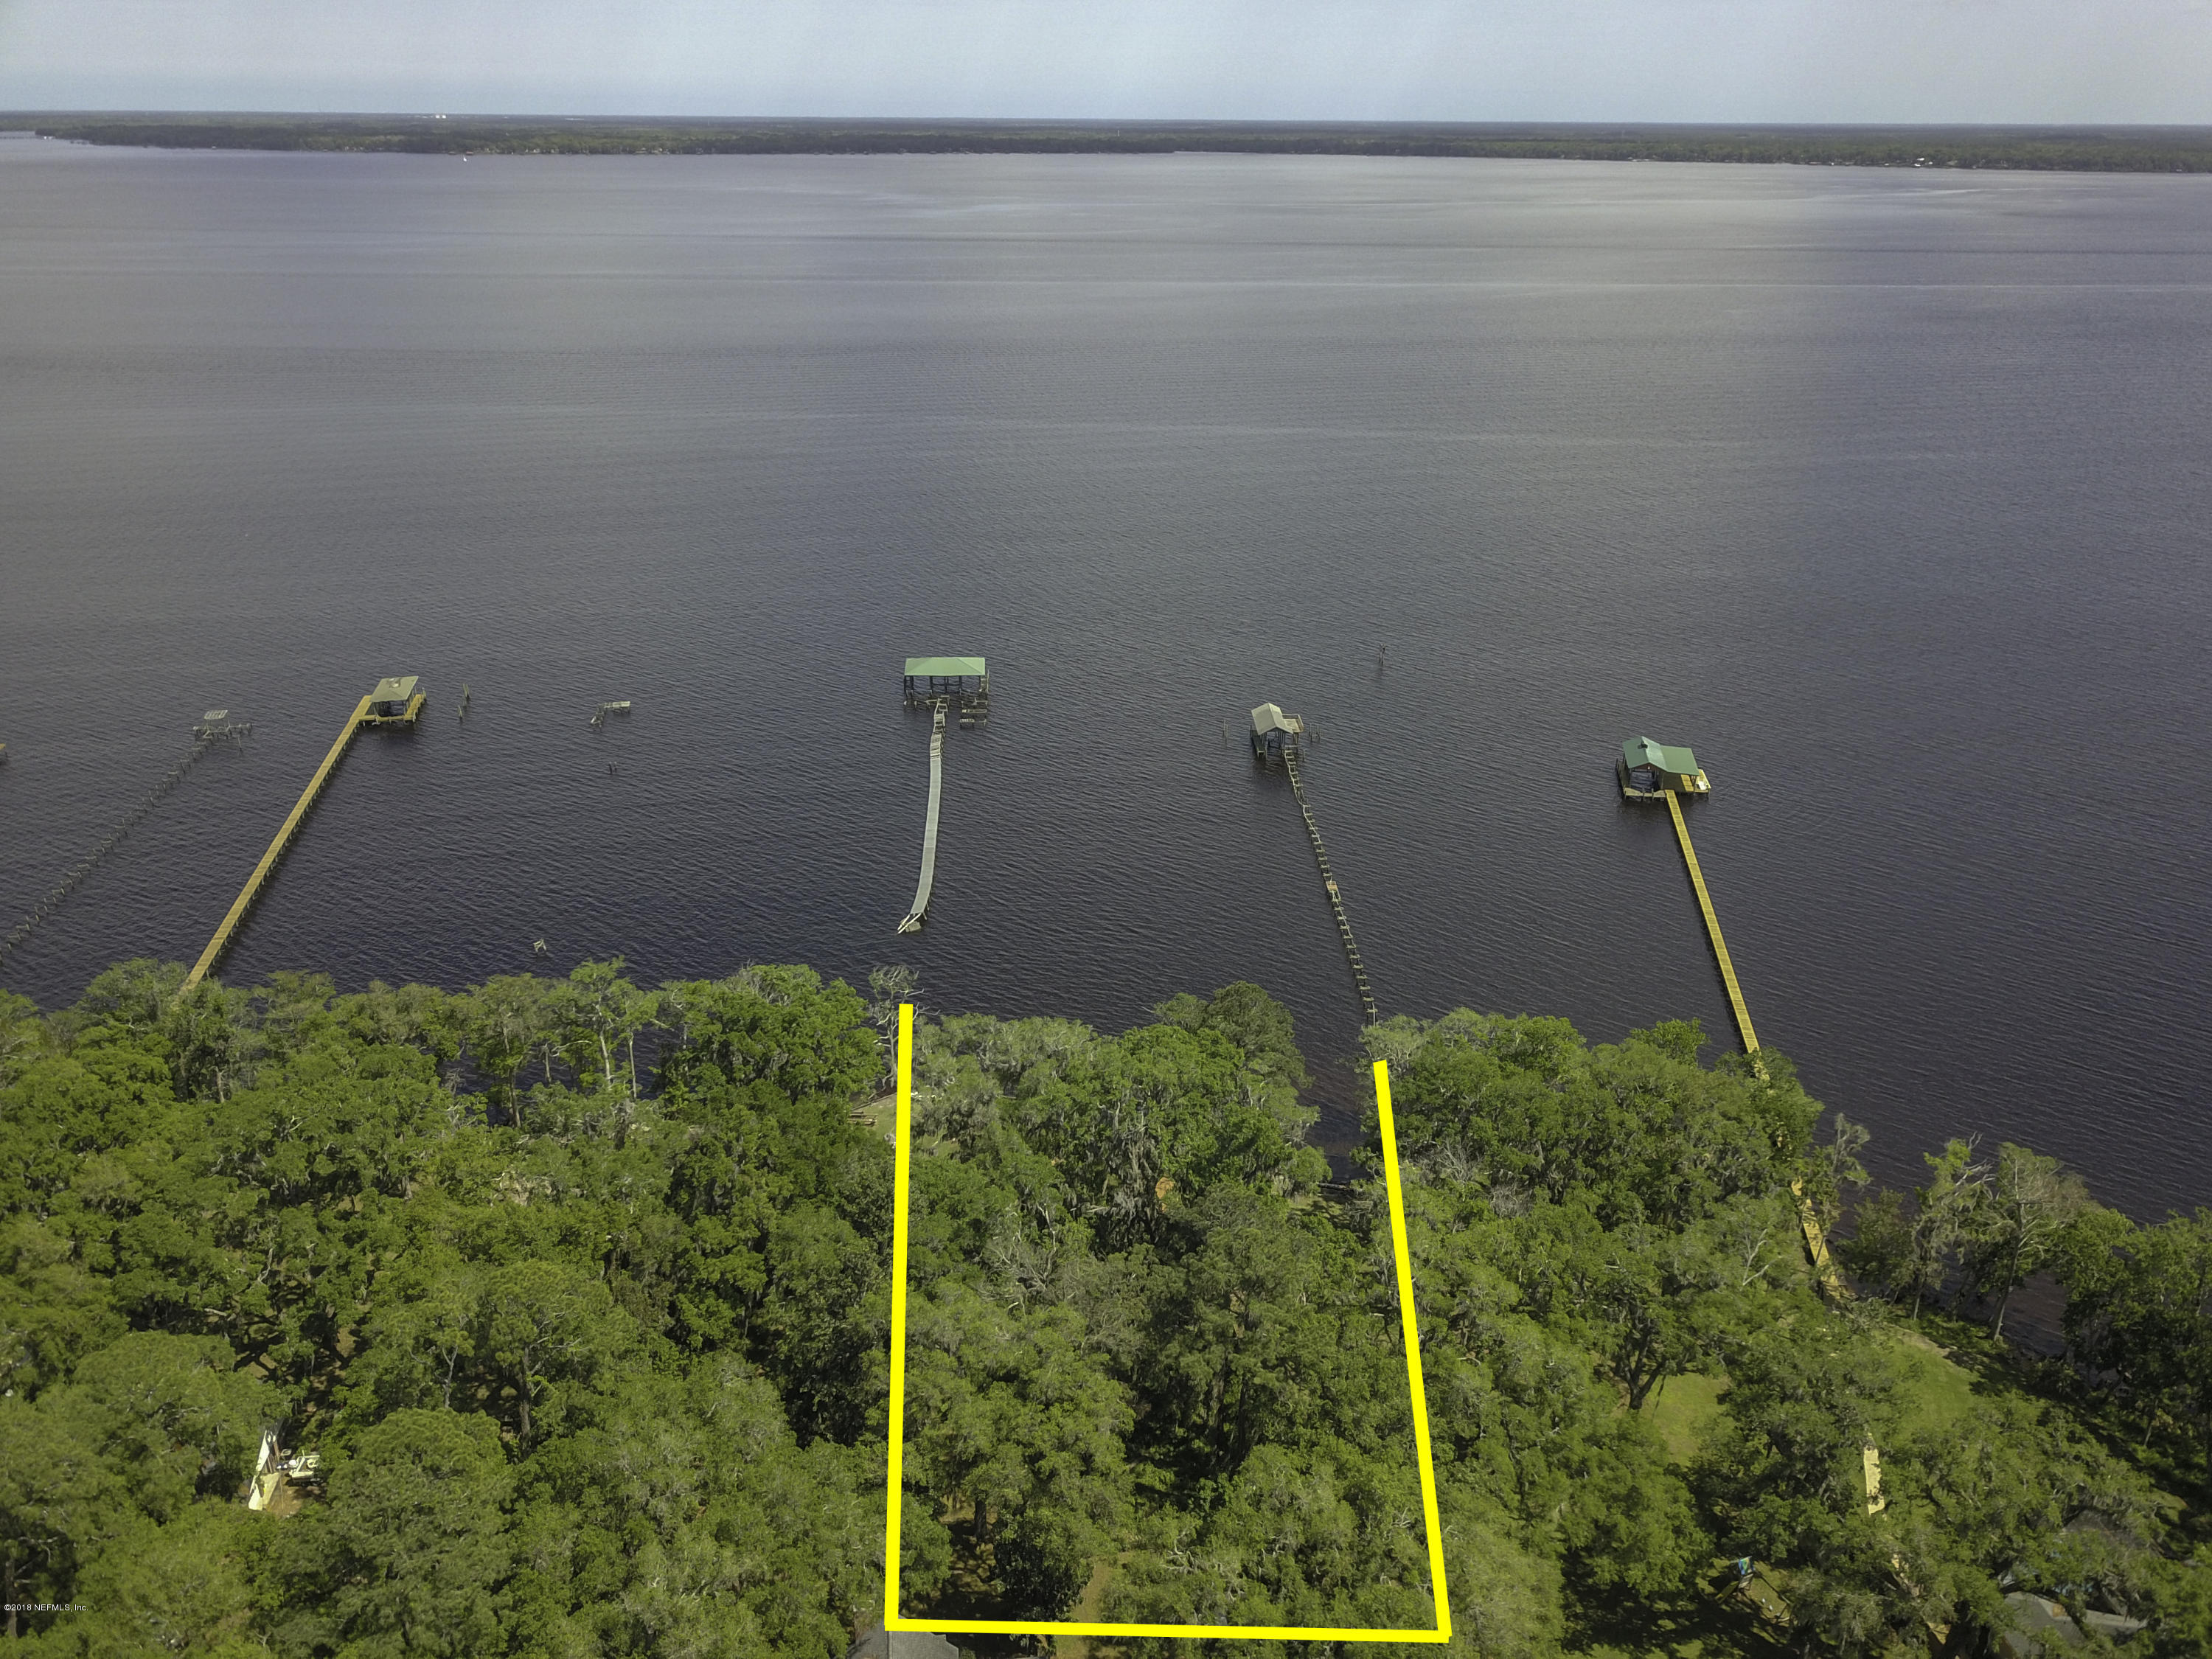 0 HARVEY GRANT, FLEMING ISLAND, FLORIDA 32003, ,Vacant land,For sale,HARVEY GRANT,927564